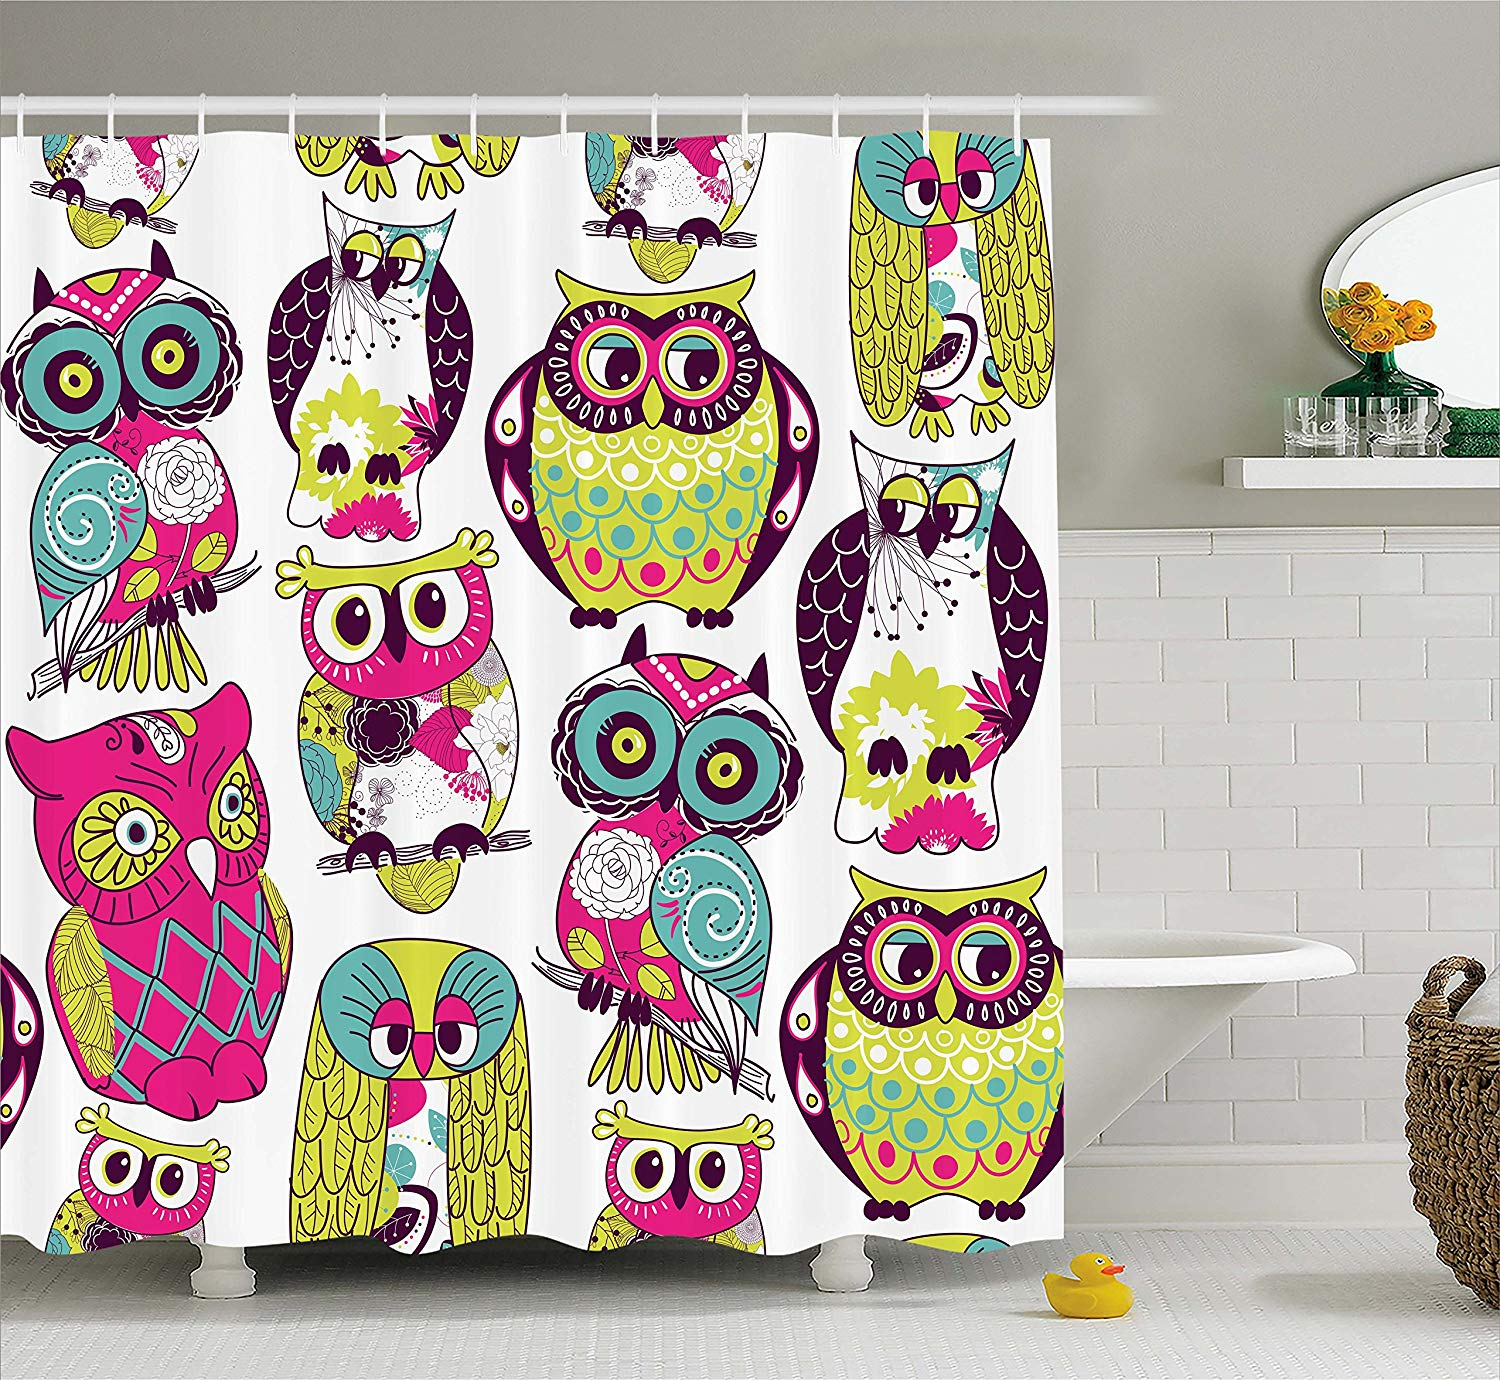 Owl Decor For Bathroom Kids Bathroom Shower Curtain Owl Decor Owls Eyes With